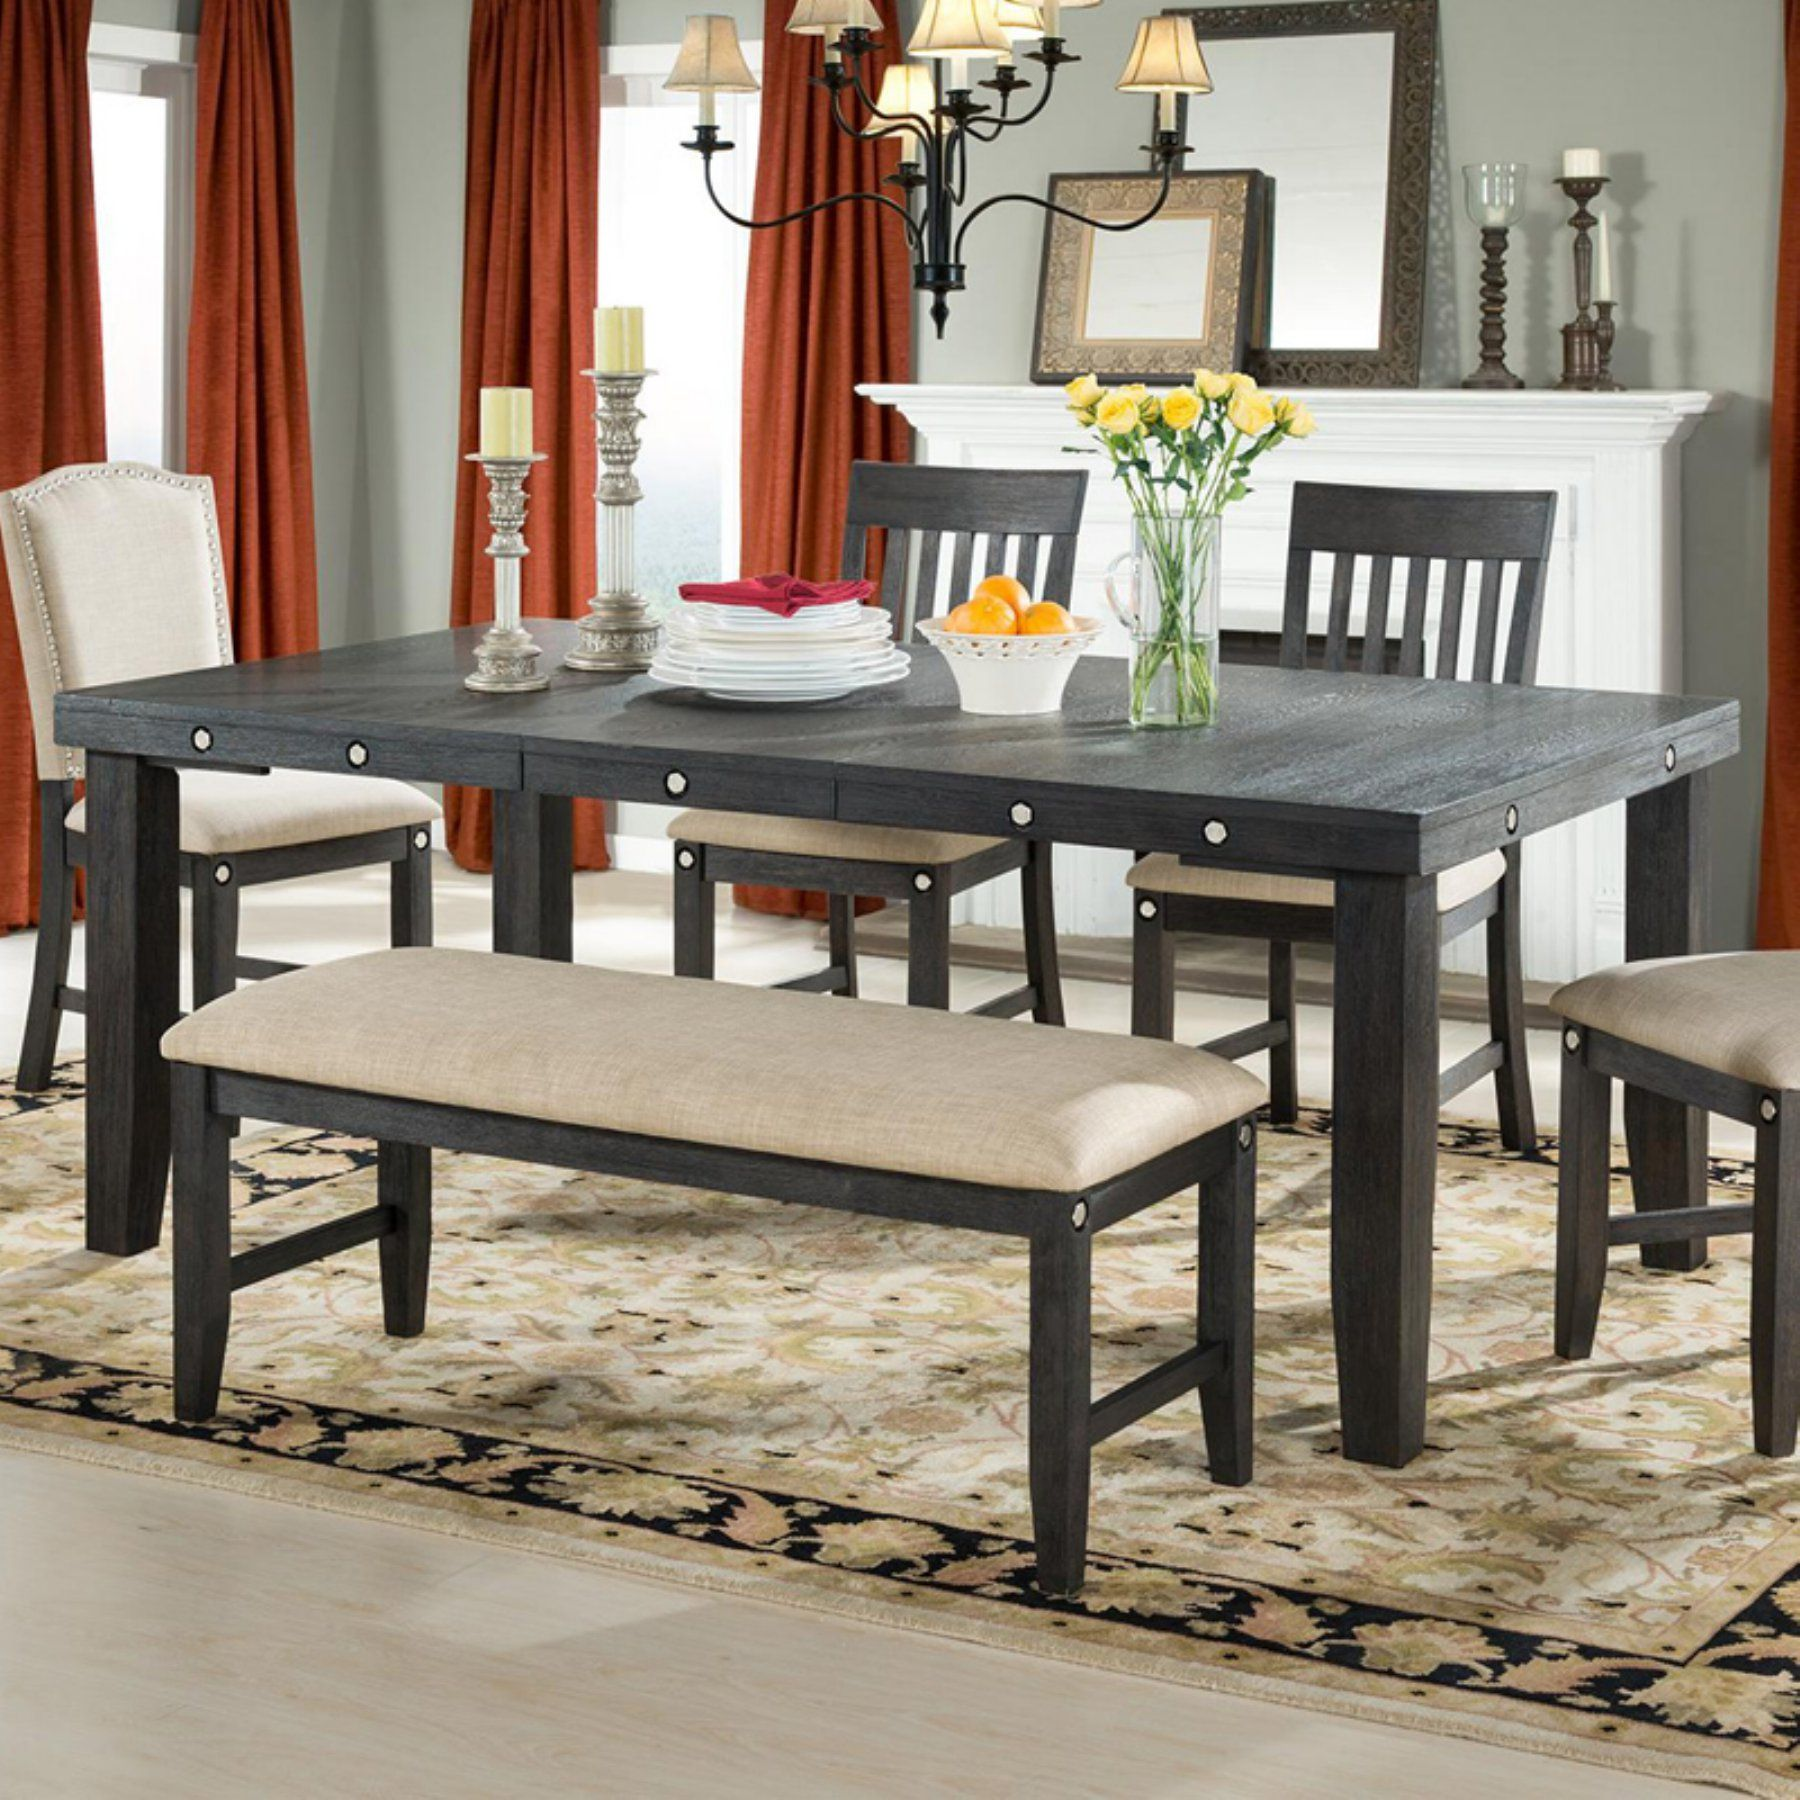 Mille Provence Dining Table